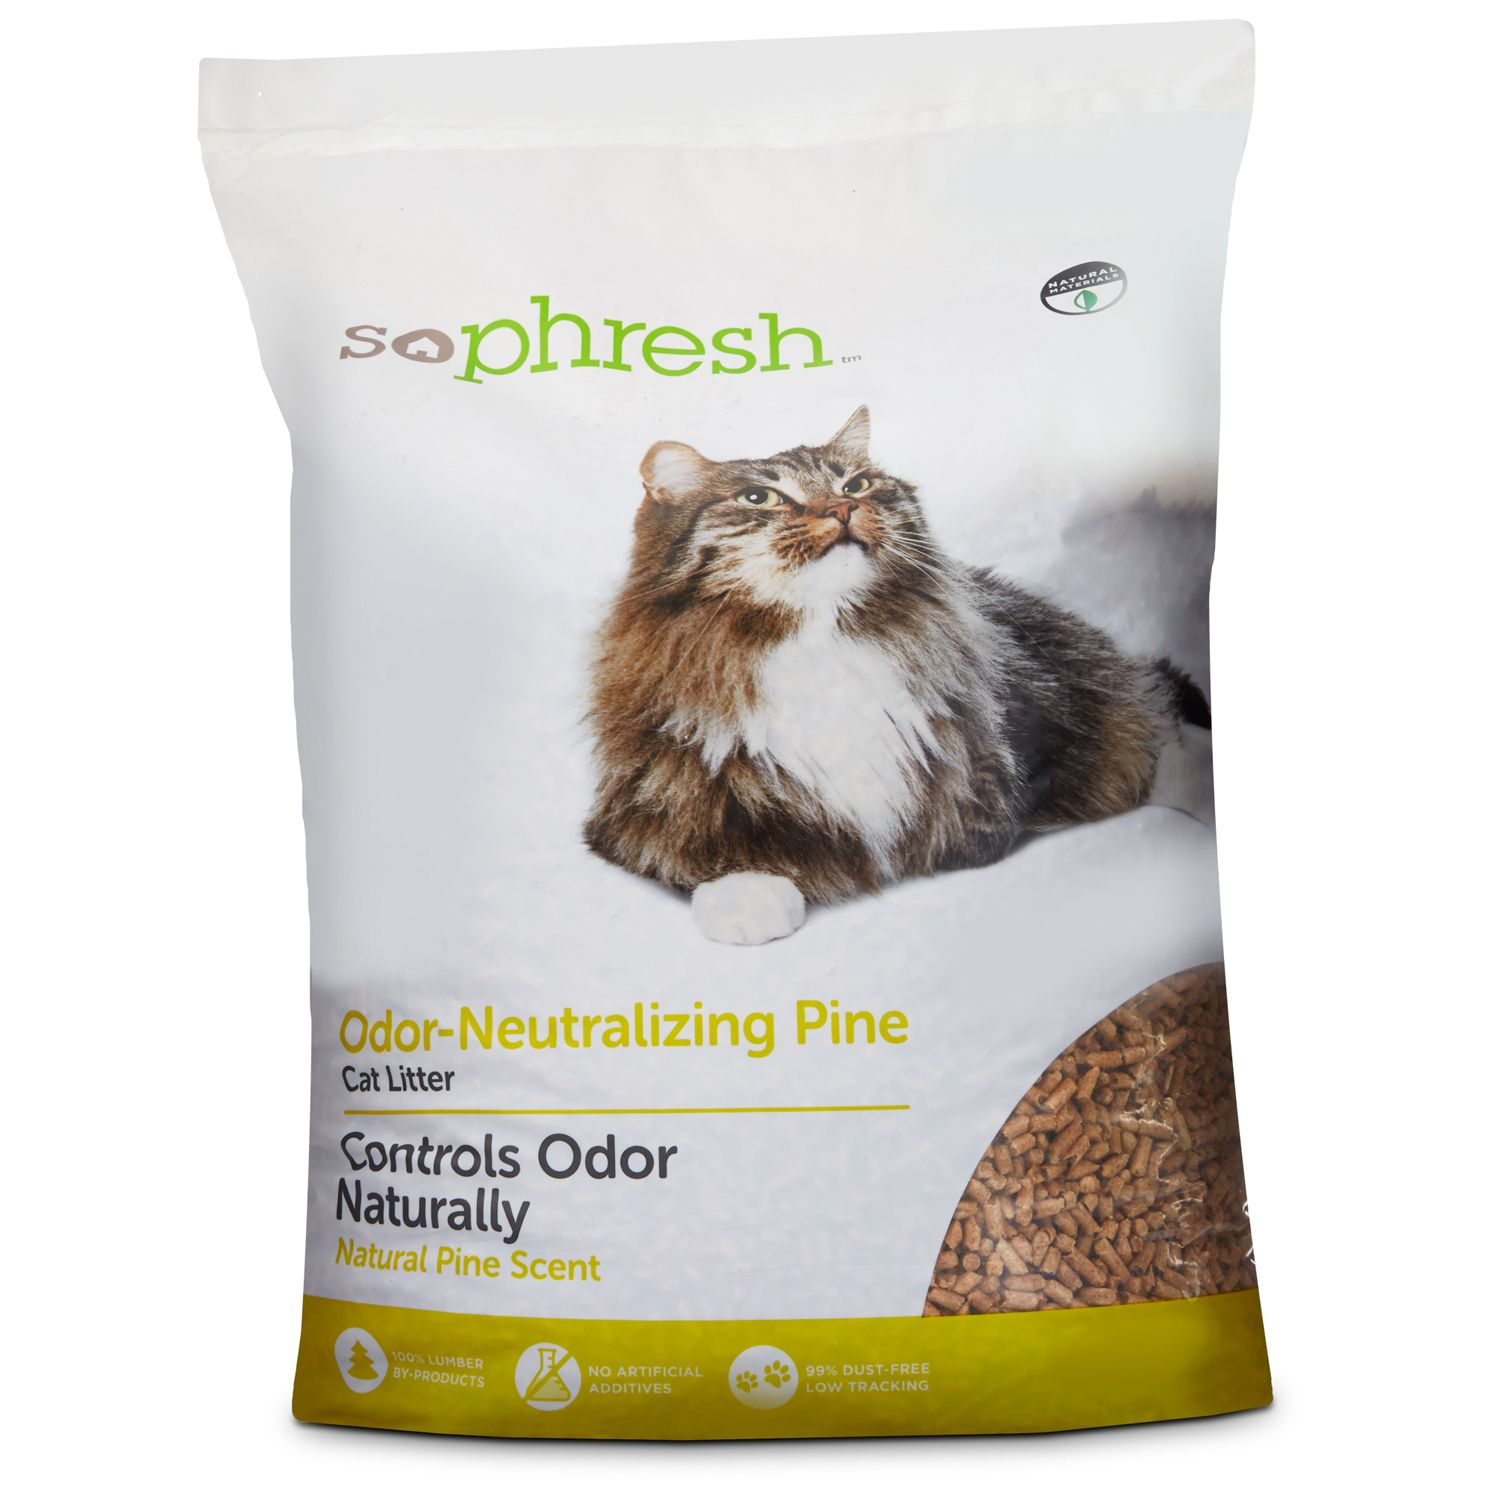 So Phresh Odor Neutralizing Pine Pellet Cat Litter Cat